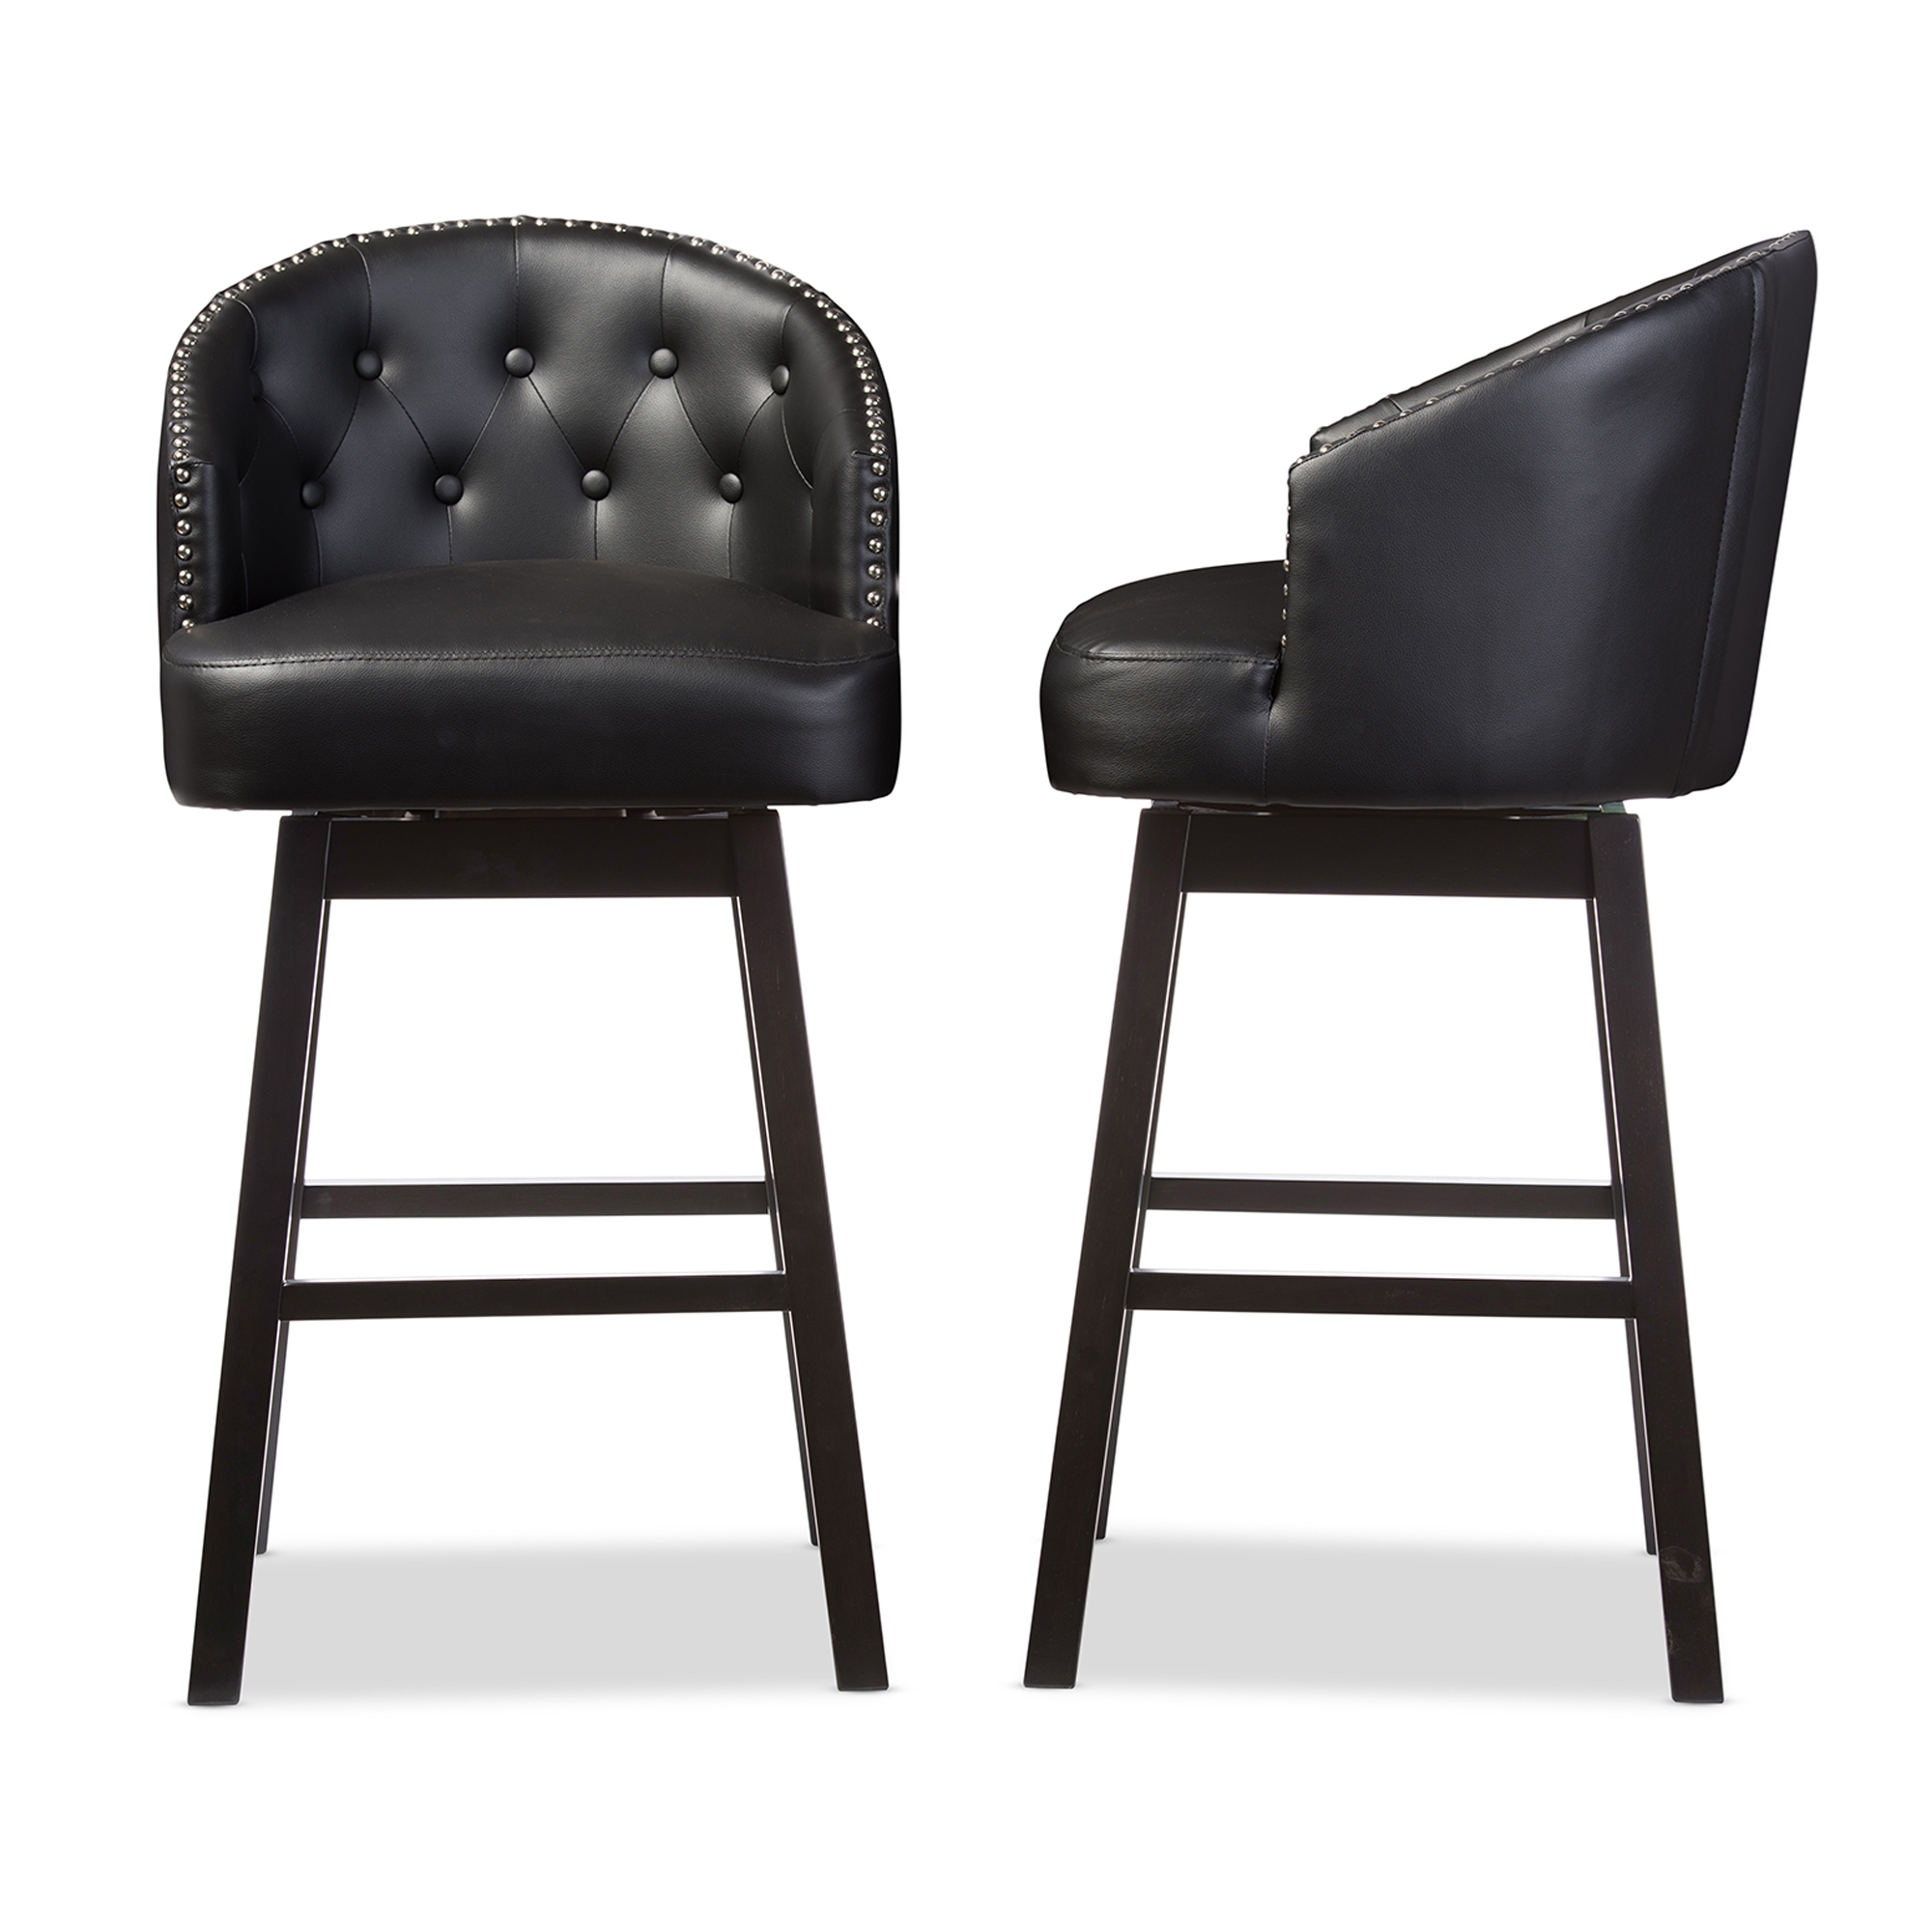 gray contemporary bar stool. baxton studio avril modern and contemporary black faux leather tufted swivel barstool with nail heads trim gray bar stool